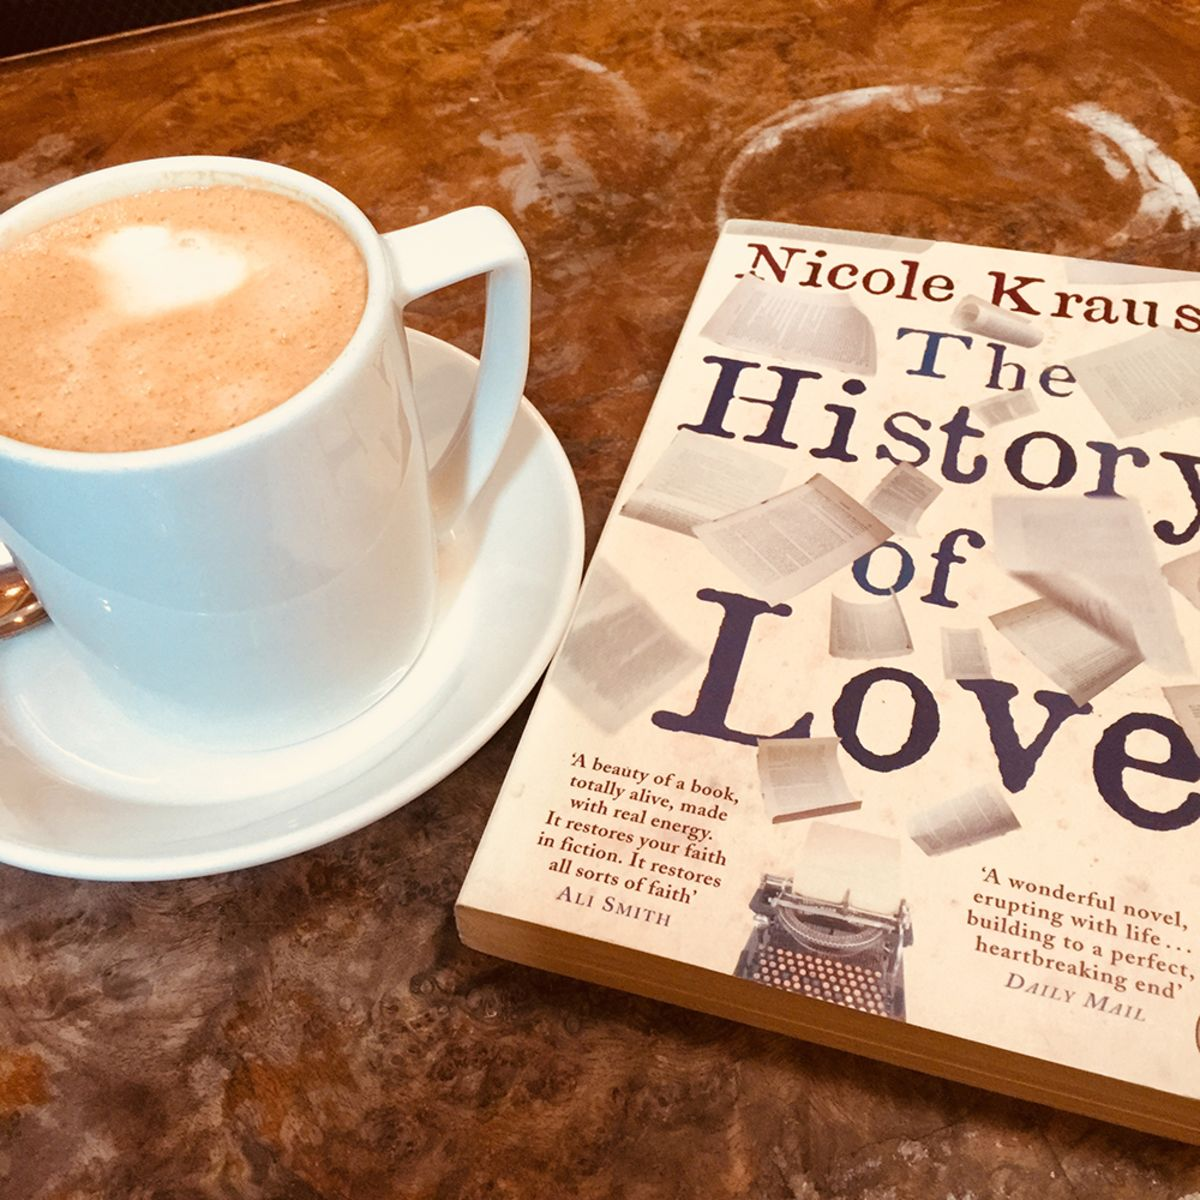 the book The History of Love with a cup of coffee